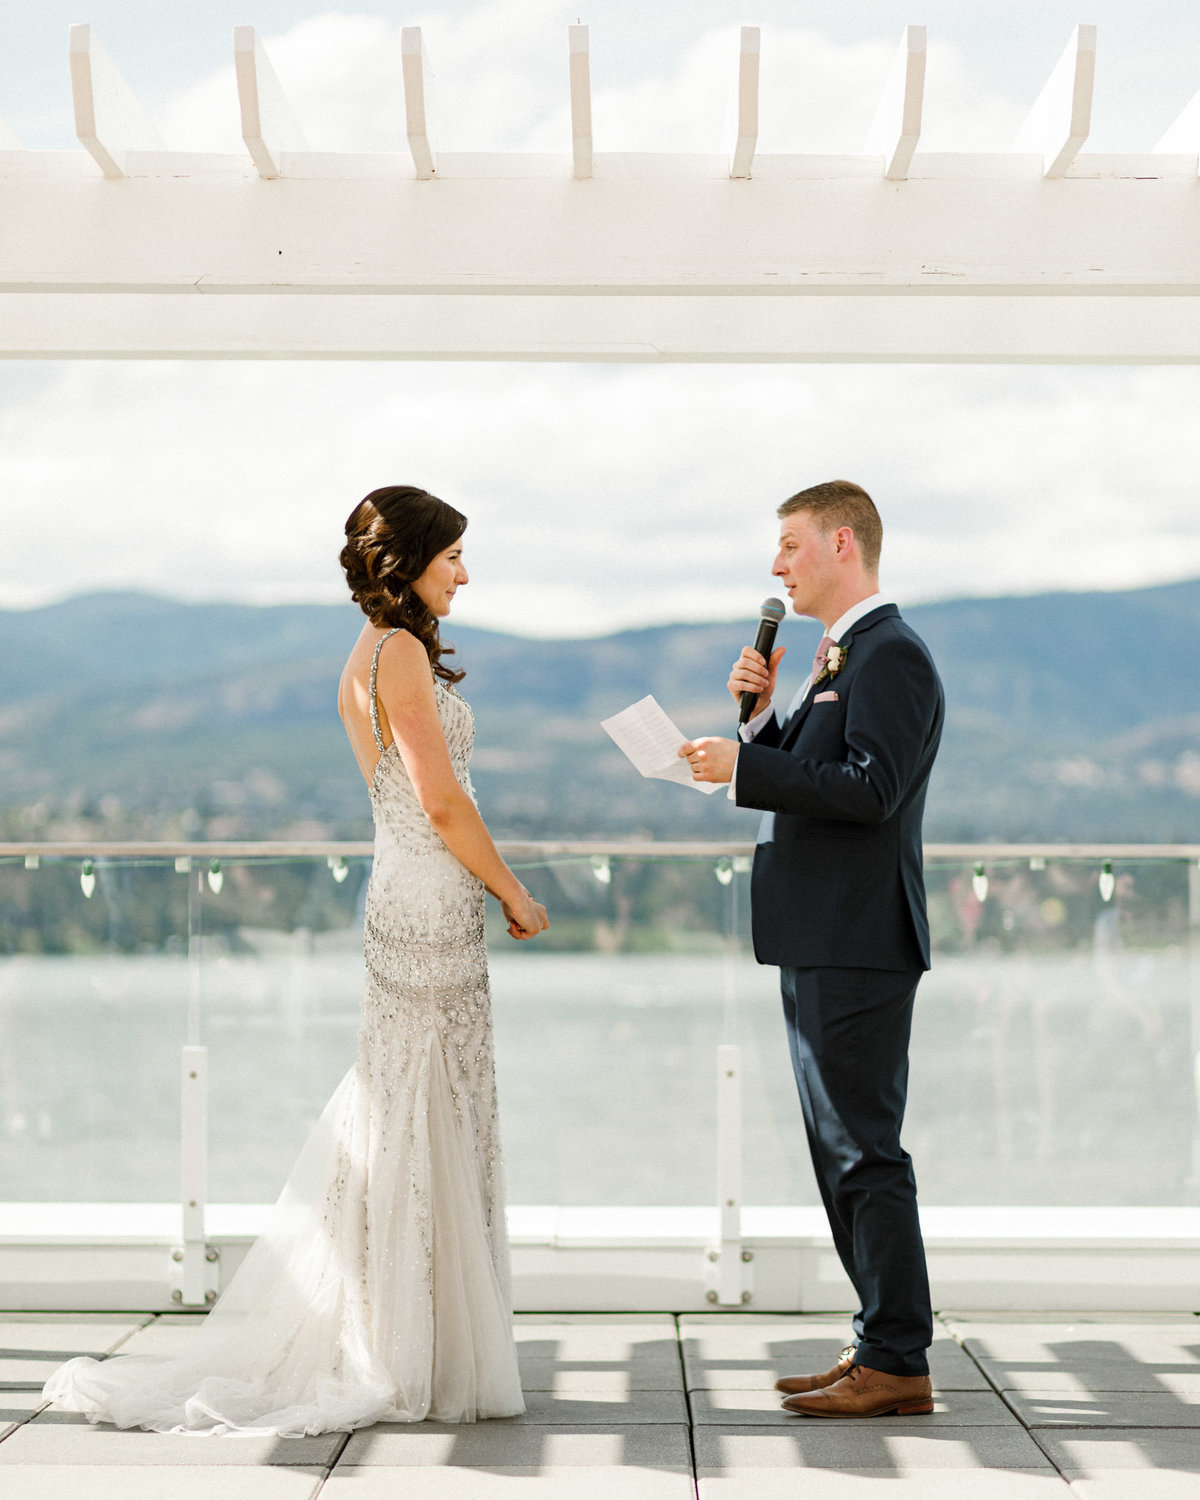 danika lee photography_kelowna vancouver okanagan summerland lake country wedding and elopement photographer candid film documentary colourful candid romantic dark and moody-133